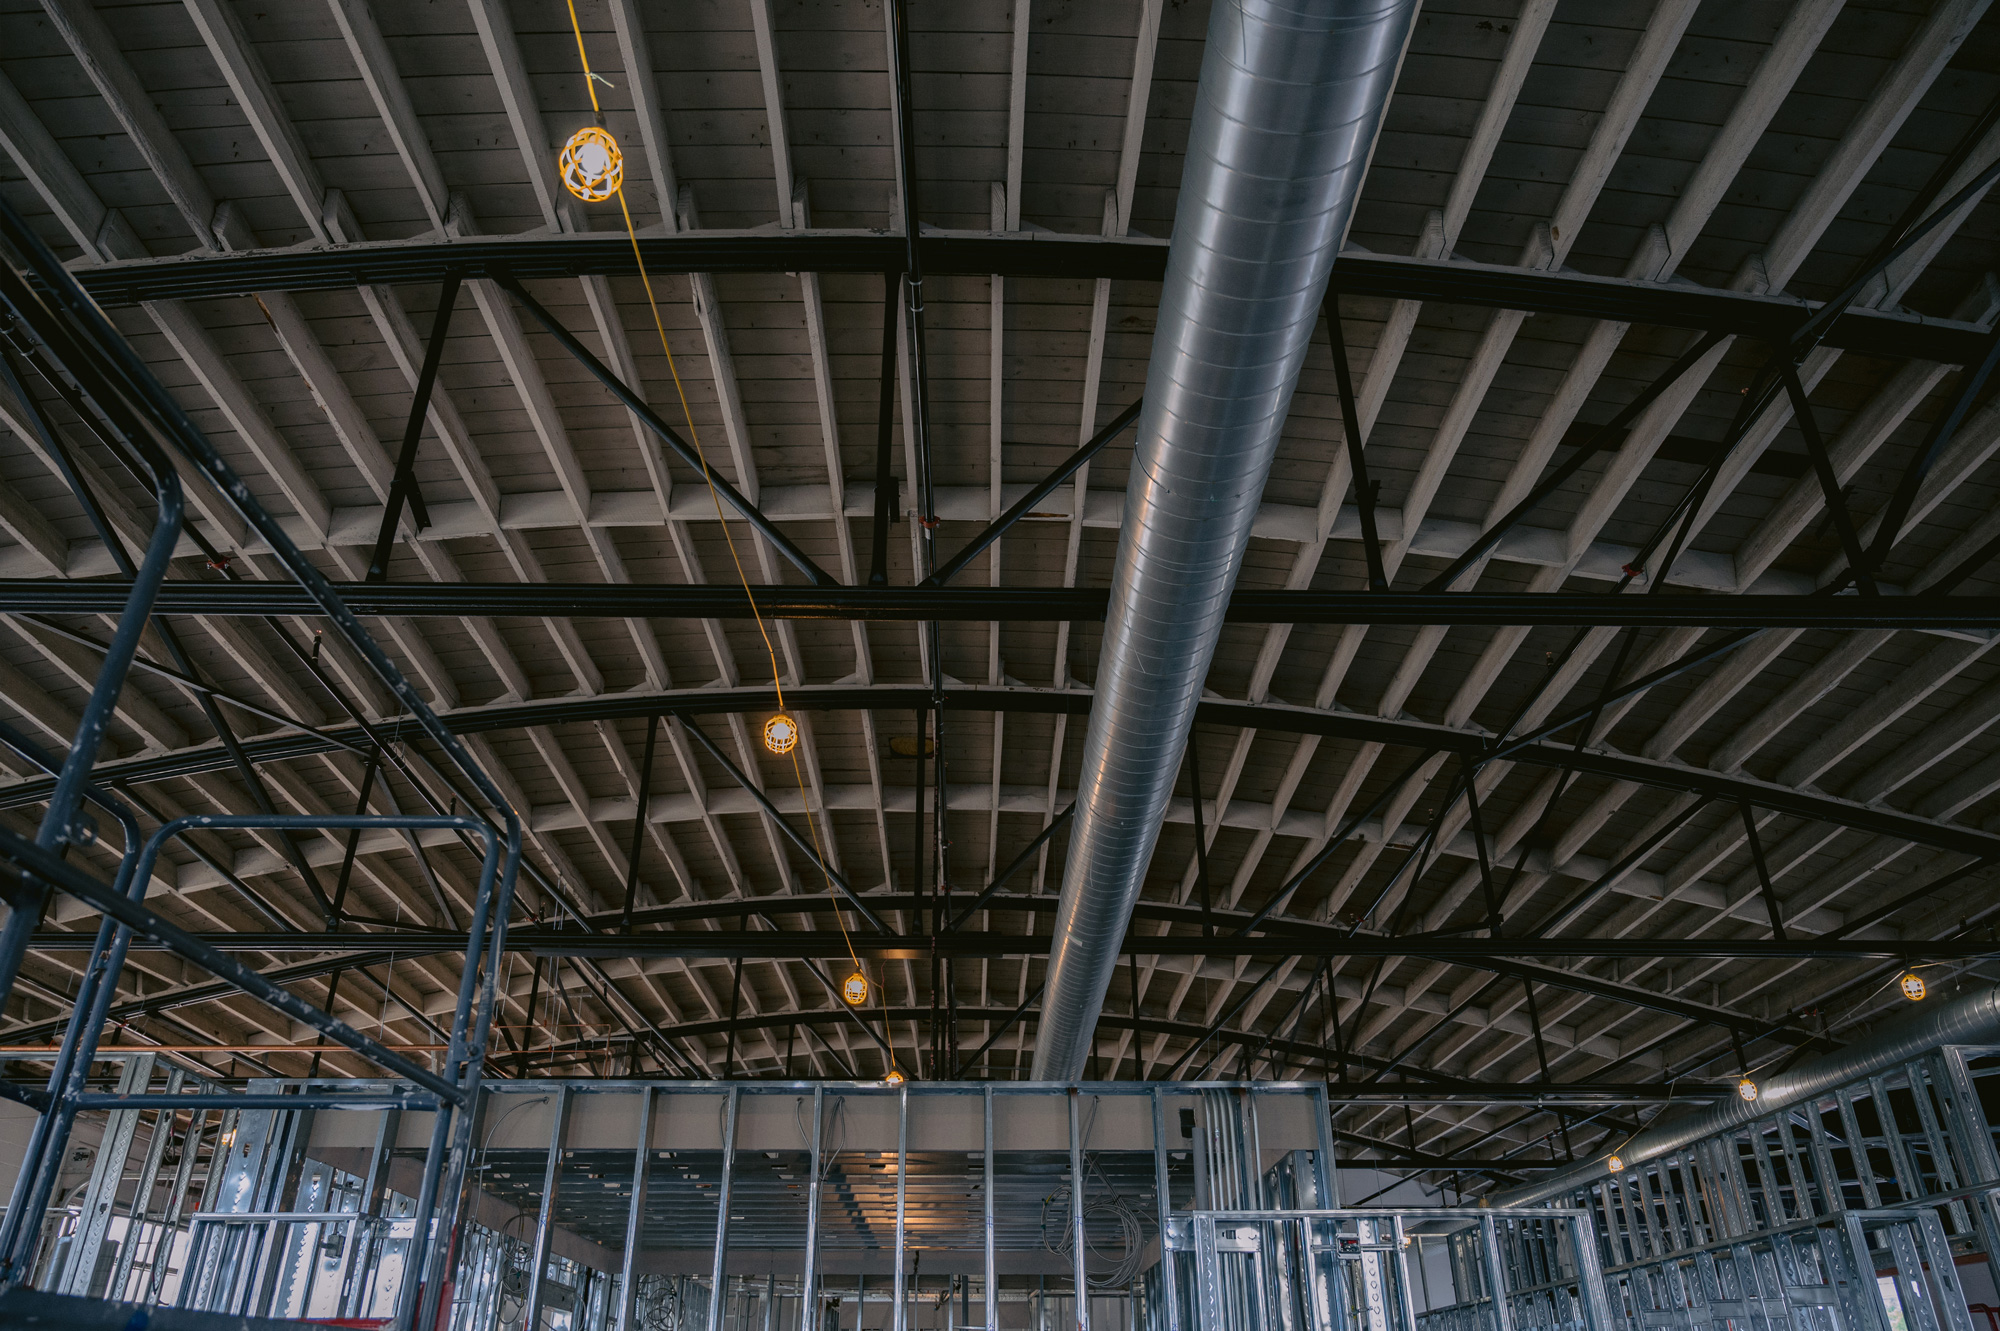 Bow truss ceiling of BOLTGROUP's new office